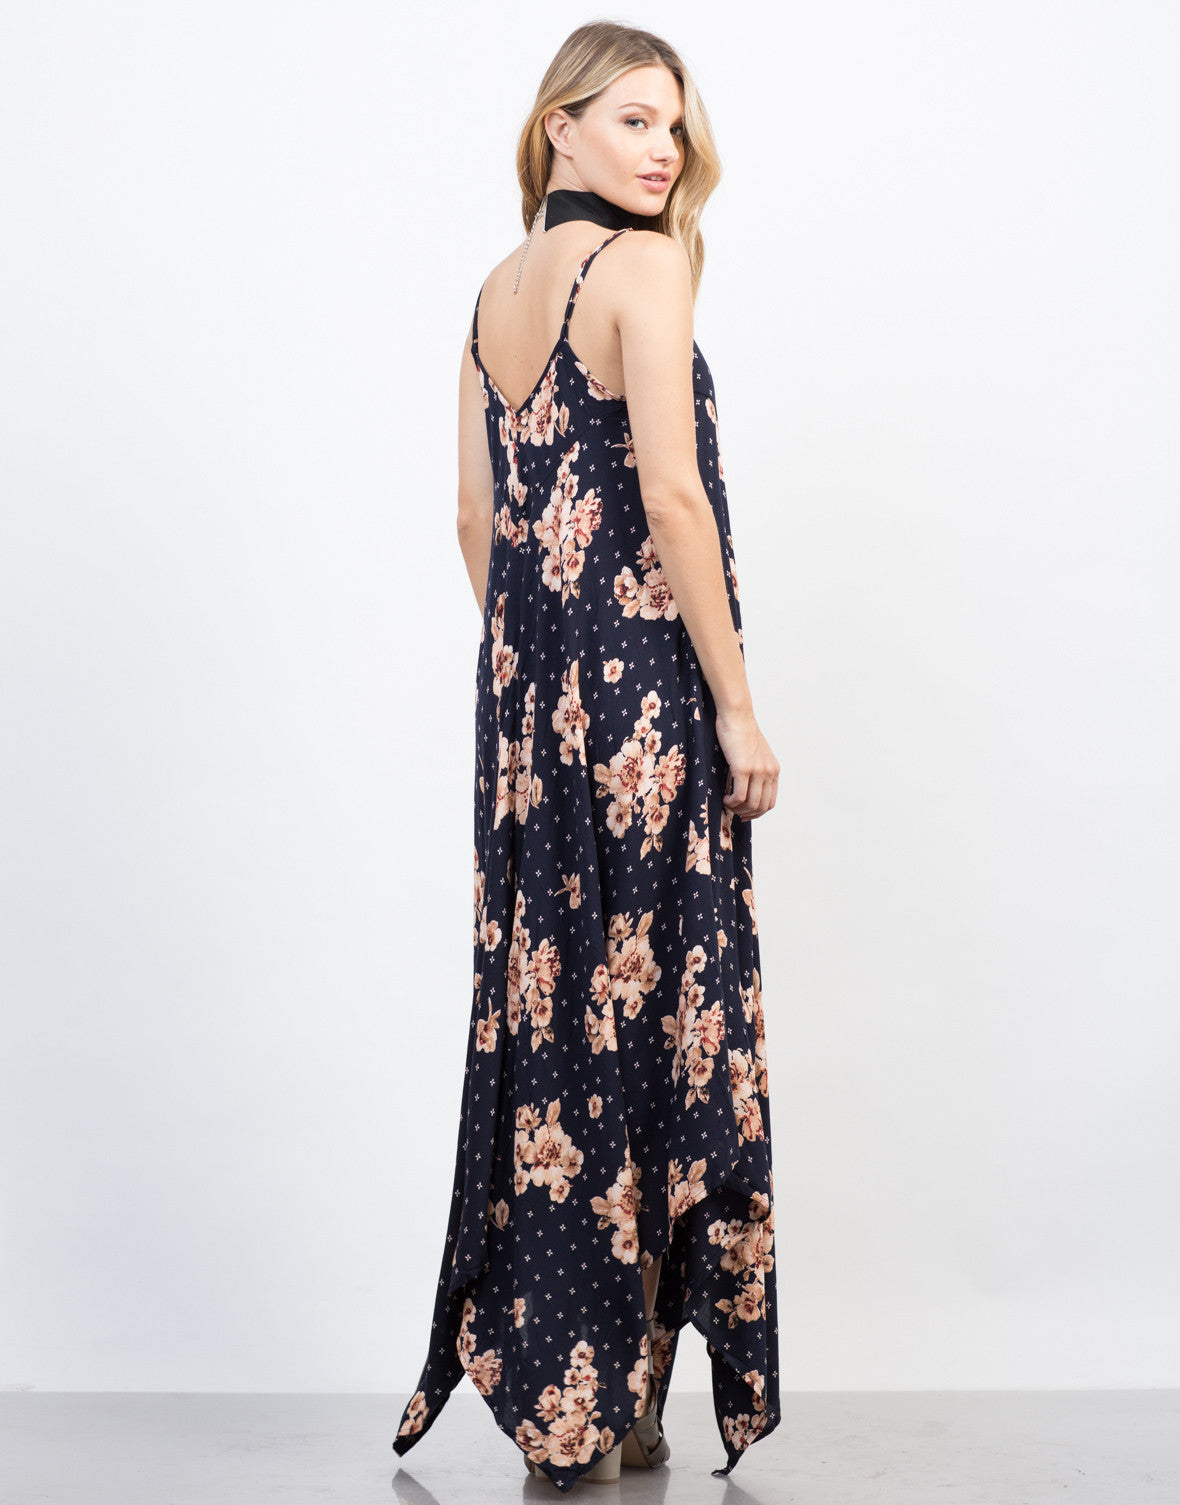 Back View of Pretty in Florals Maxi Dress